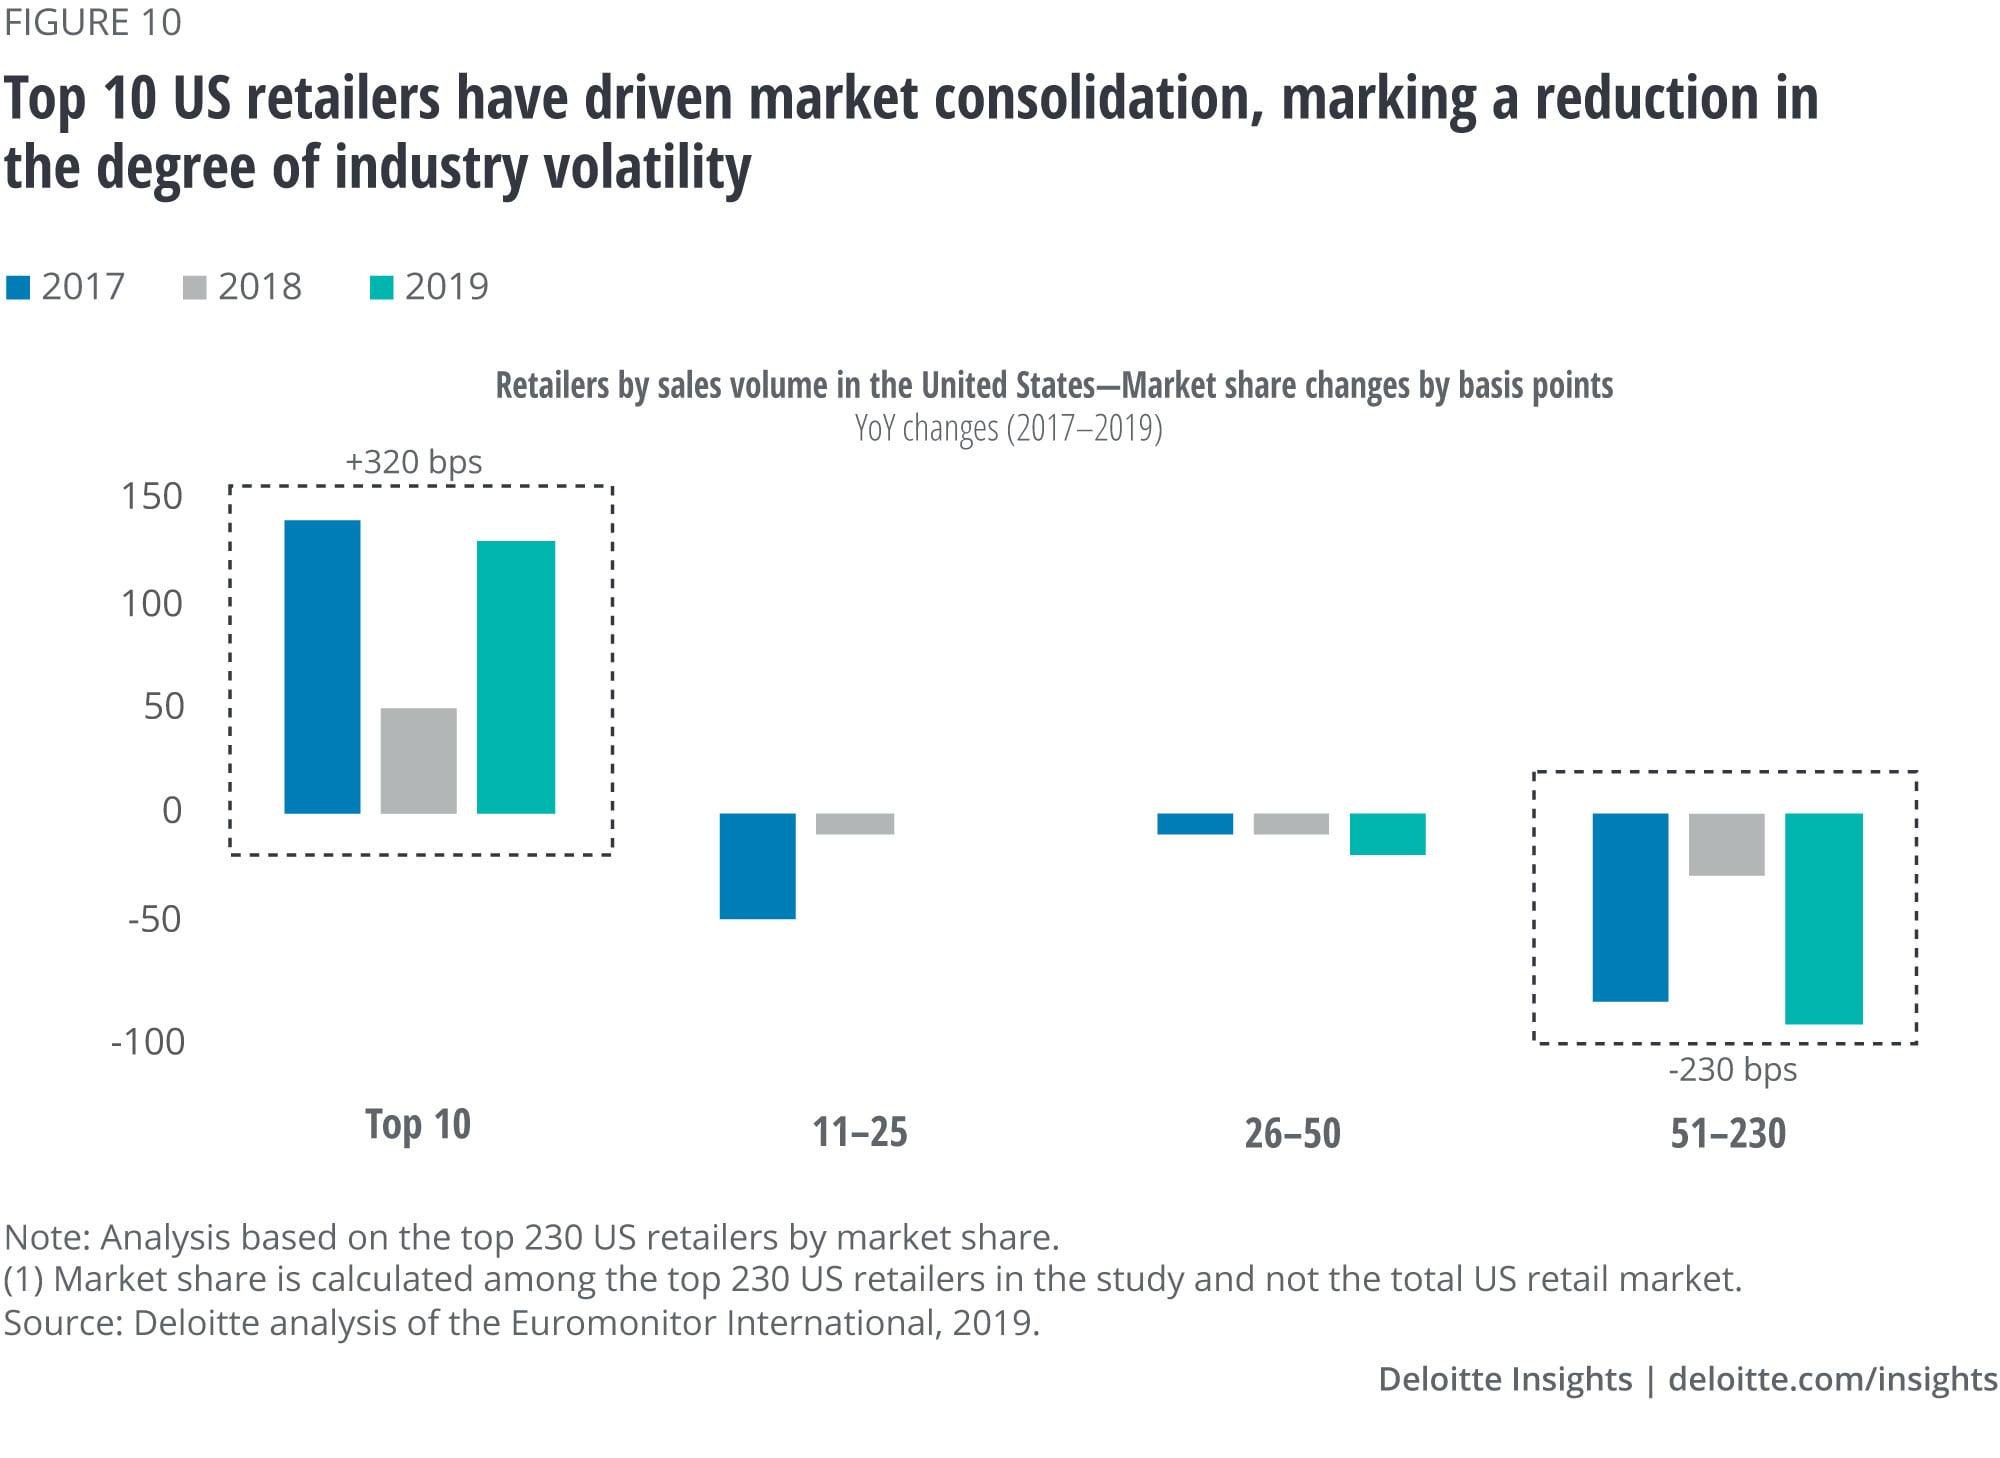 Top 10 US retailers have driven market consolidation, marking a reduction in the degree of industry disruption